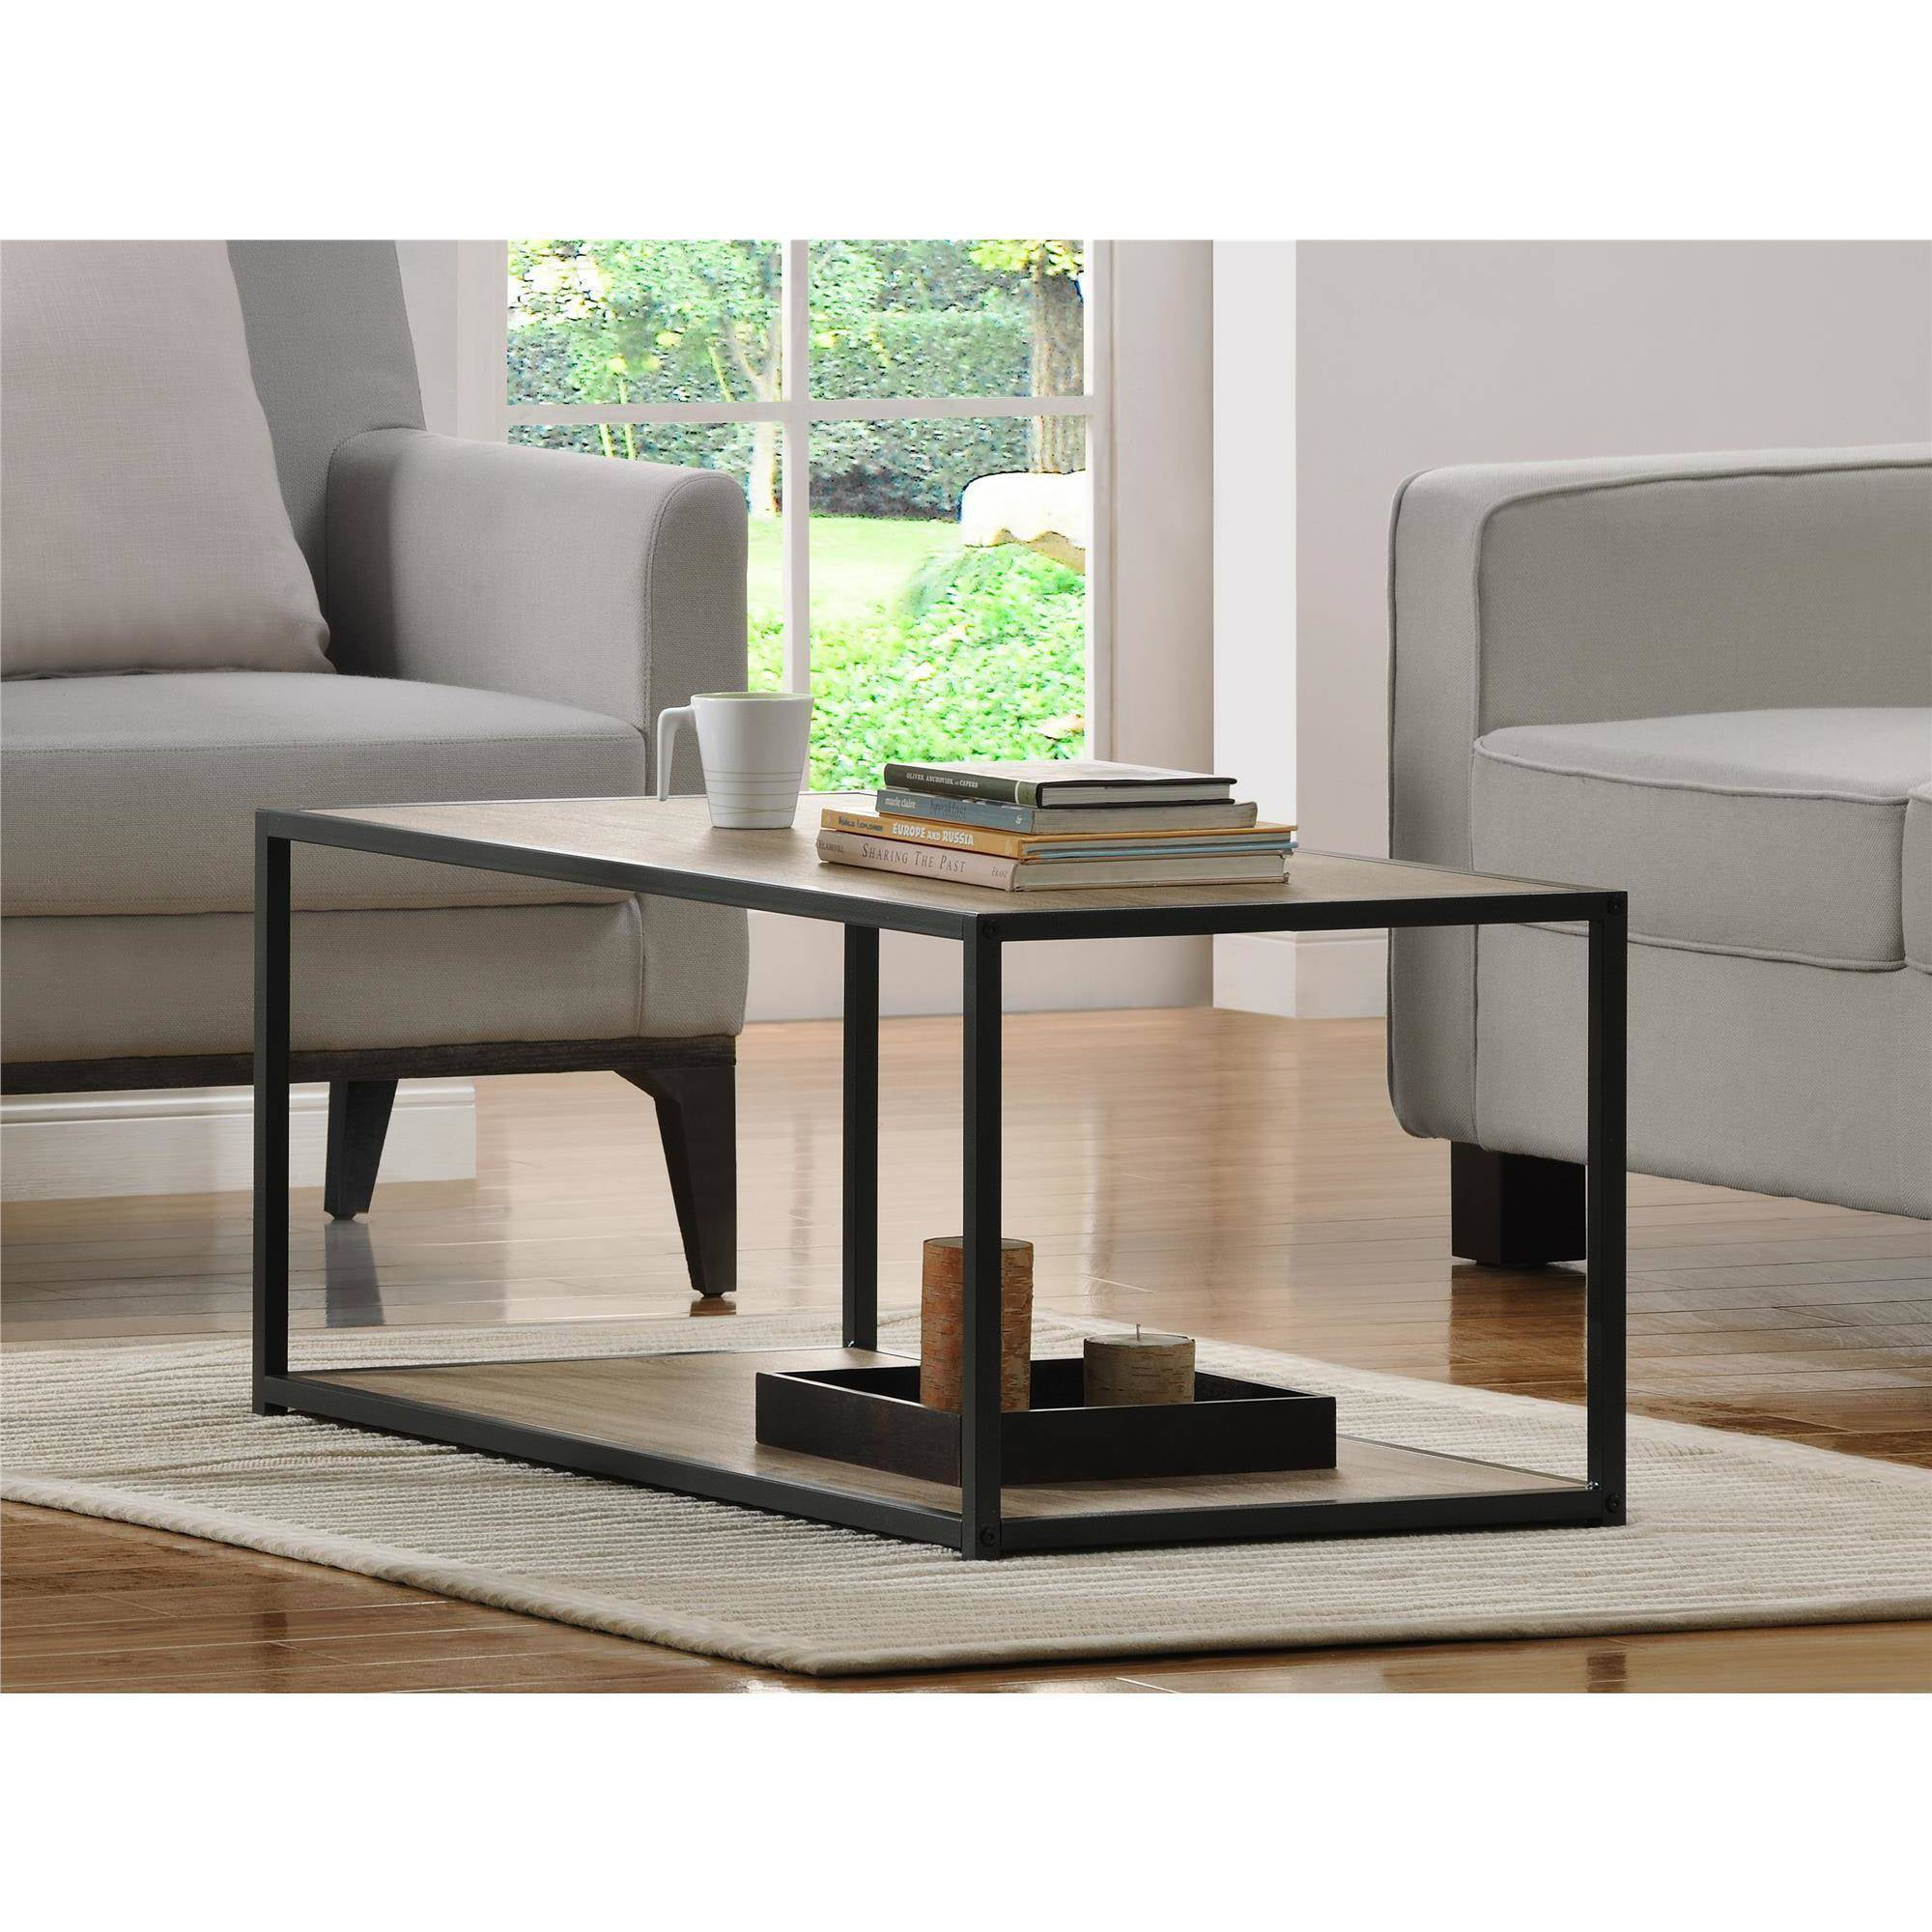 Ameriwood Home Canton Coffee Table with Metal Frame, Distressed Gray ...